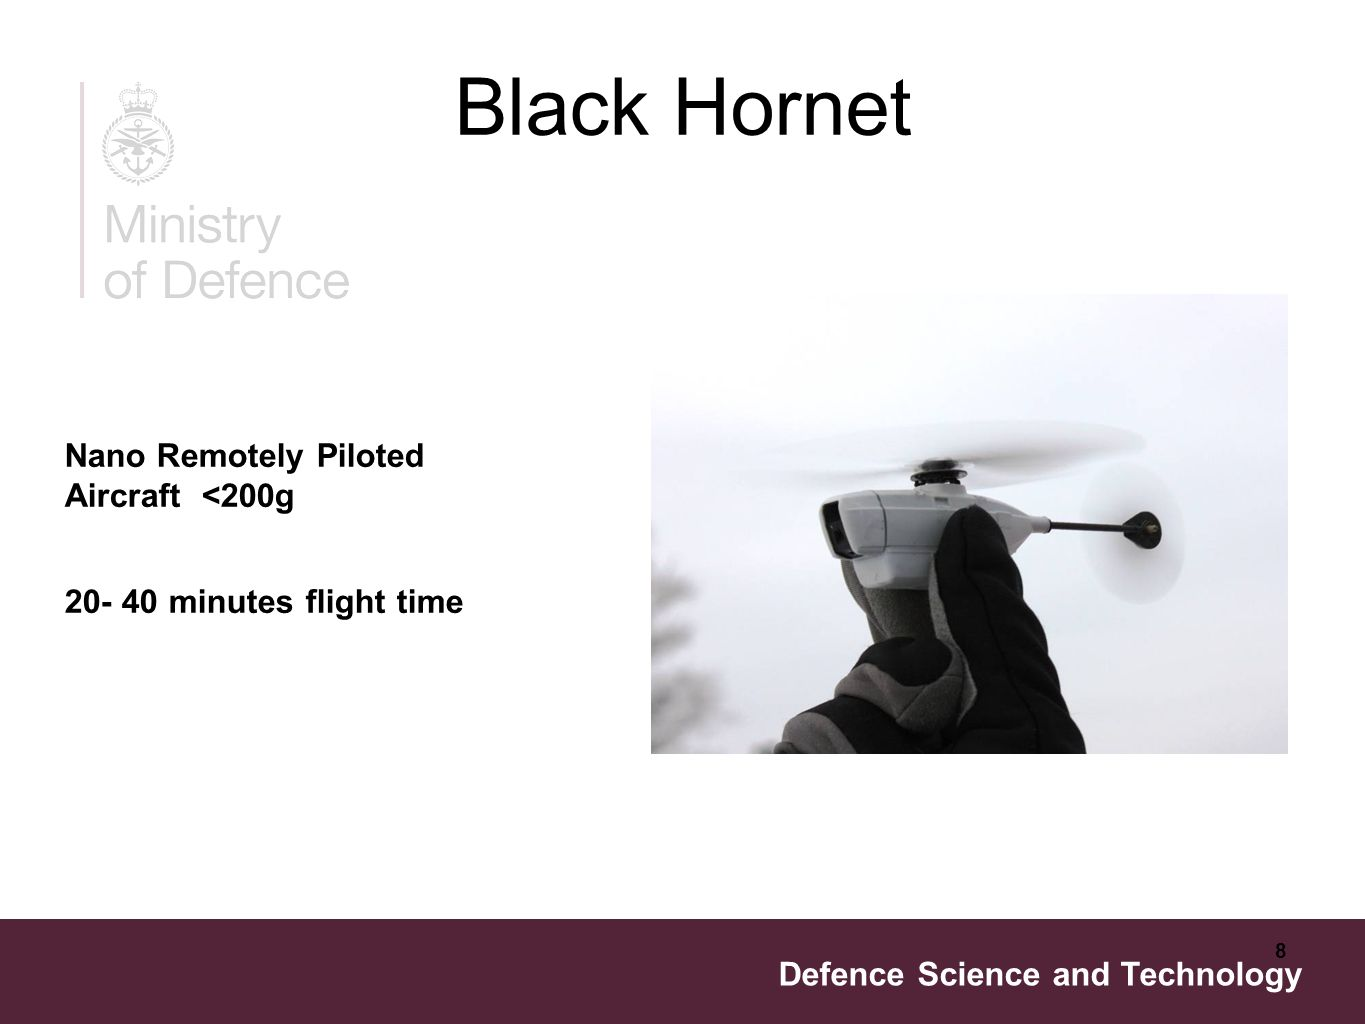 Defence Science and Technology 8 Black Hornet Nano Remotely Piloted Aircraft <200g 20- 40 minutes flight time